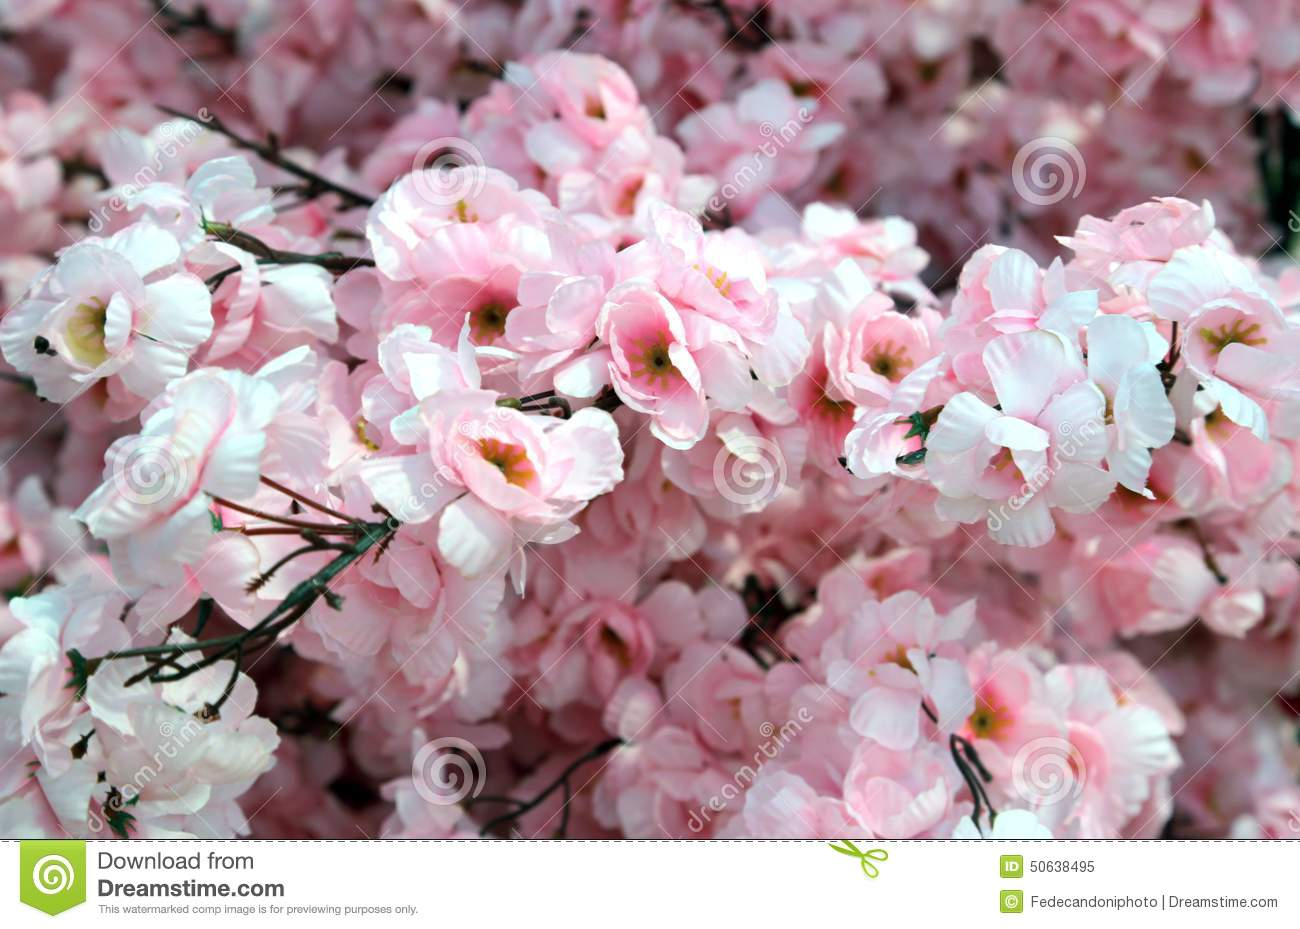 Delcate Flowers Of Pink Color Of A Peach Tree In Spring Stock Image